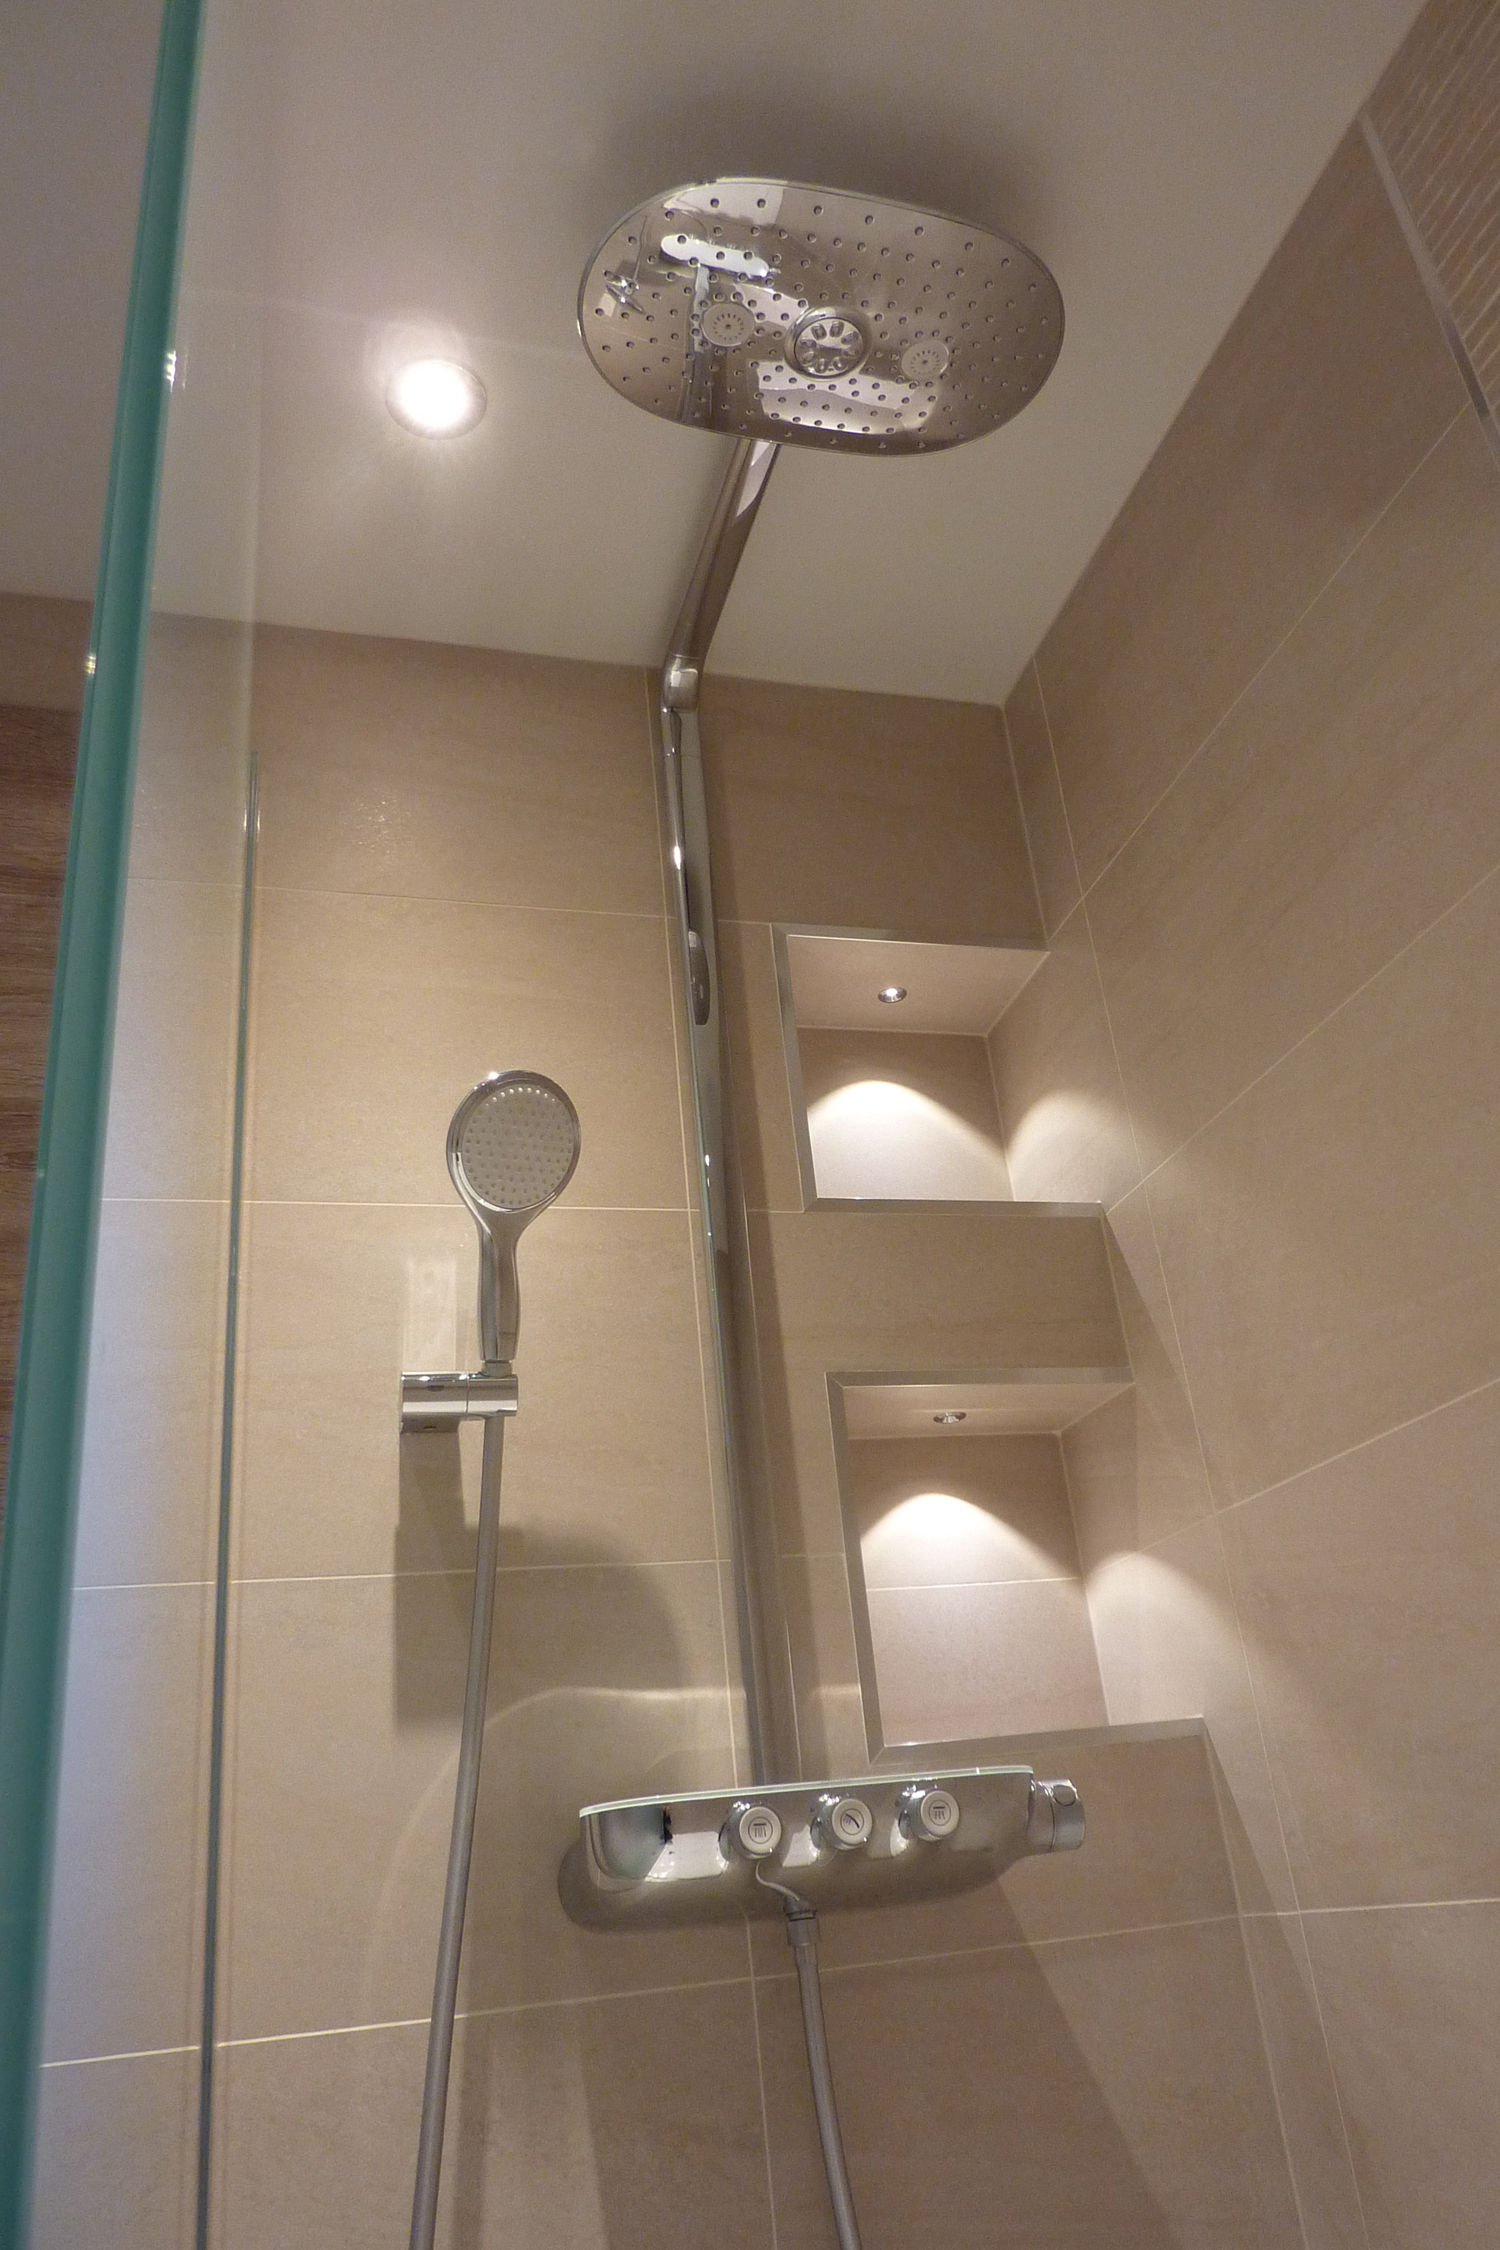 6 Bathroom and Shower, Hussein, Rochdale 2016